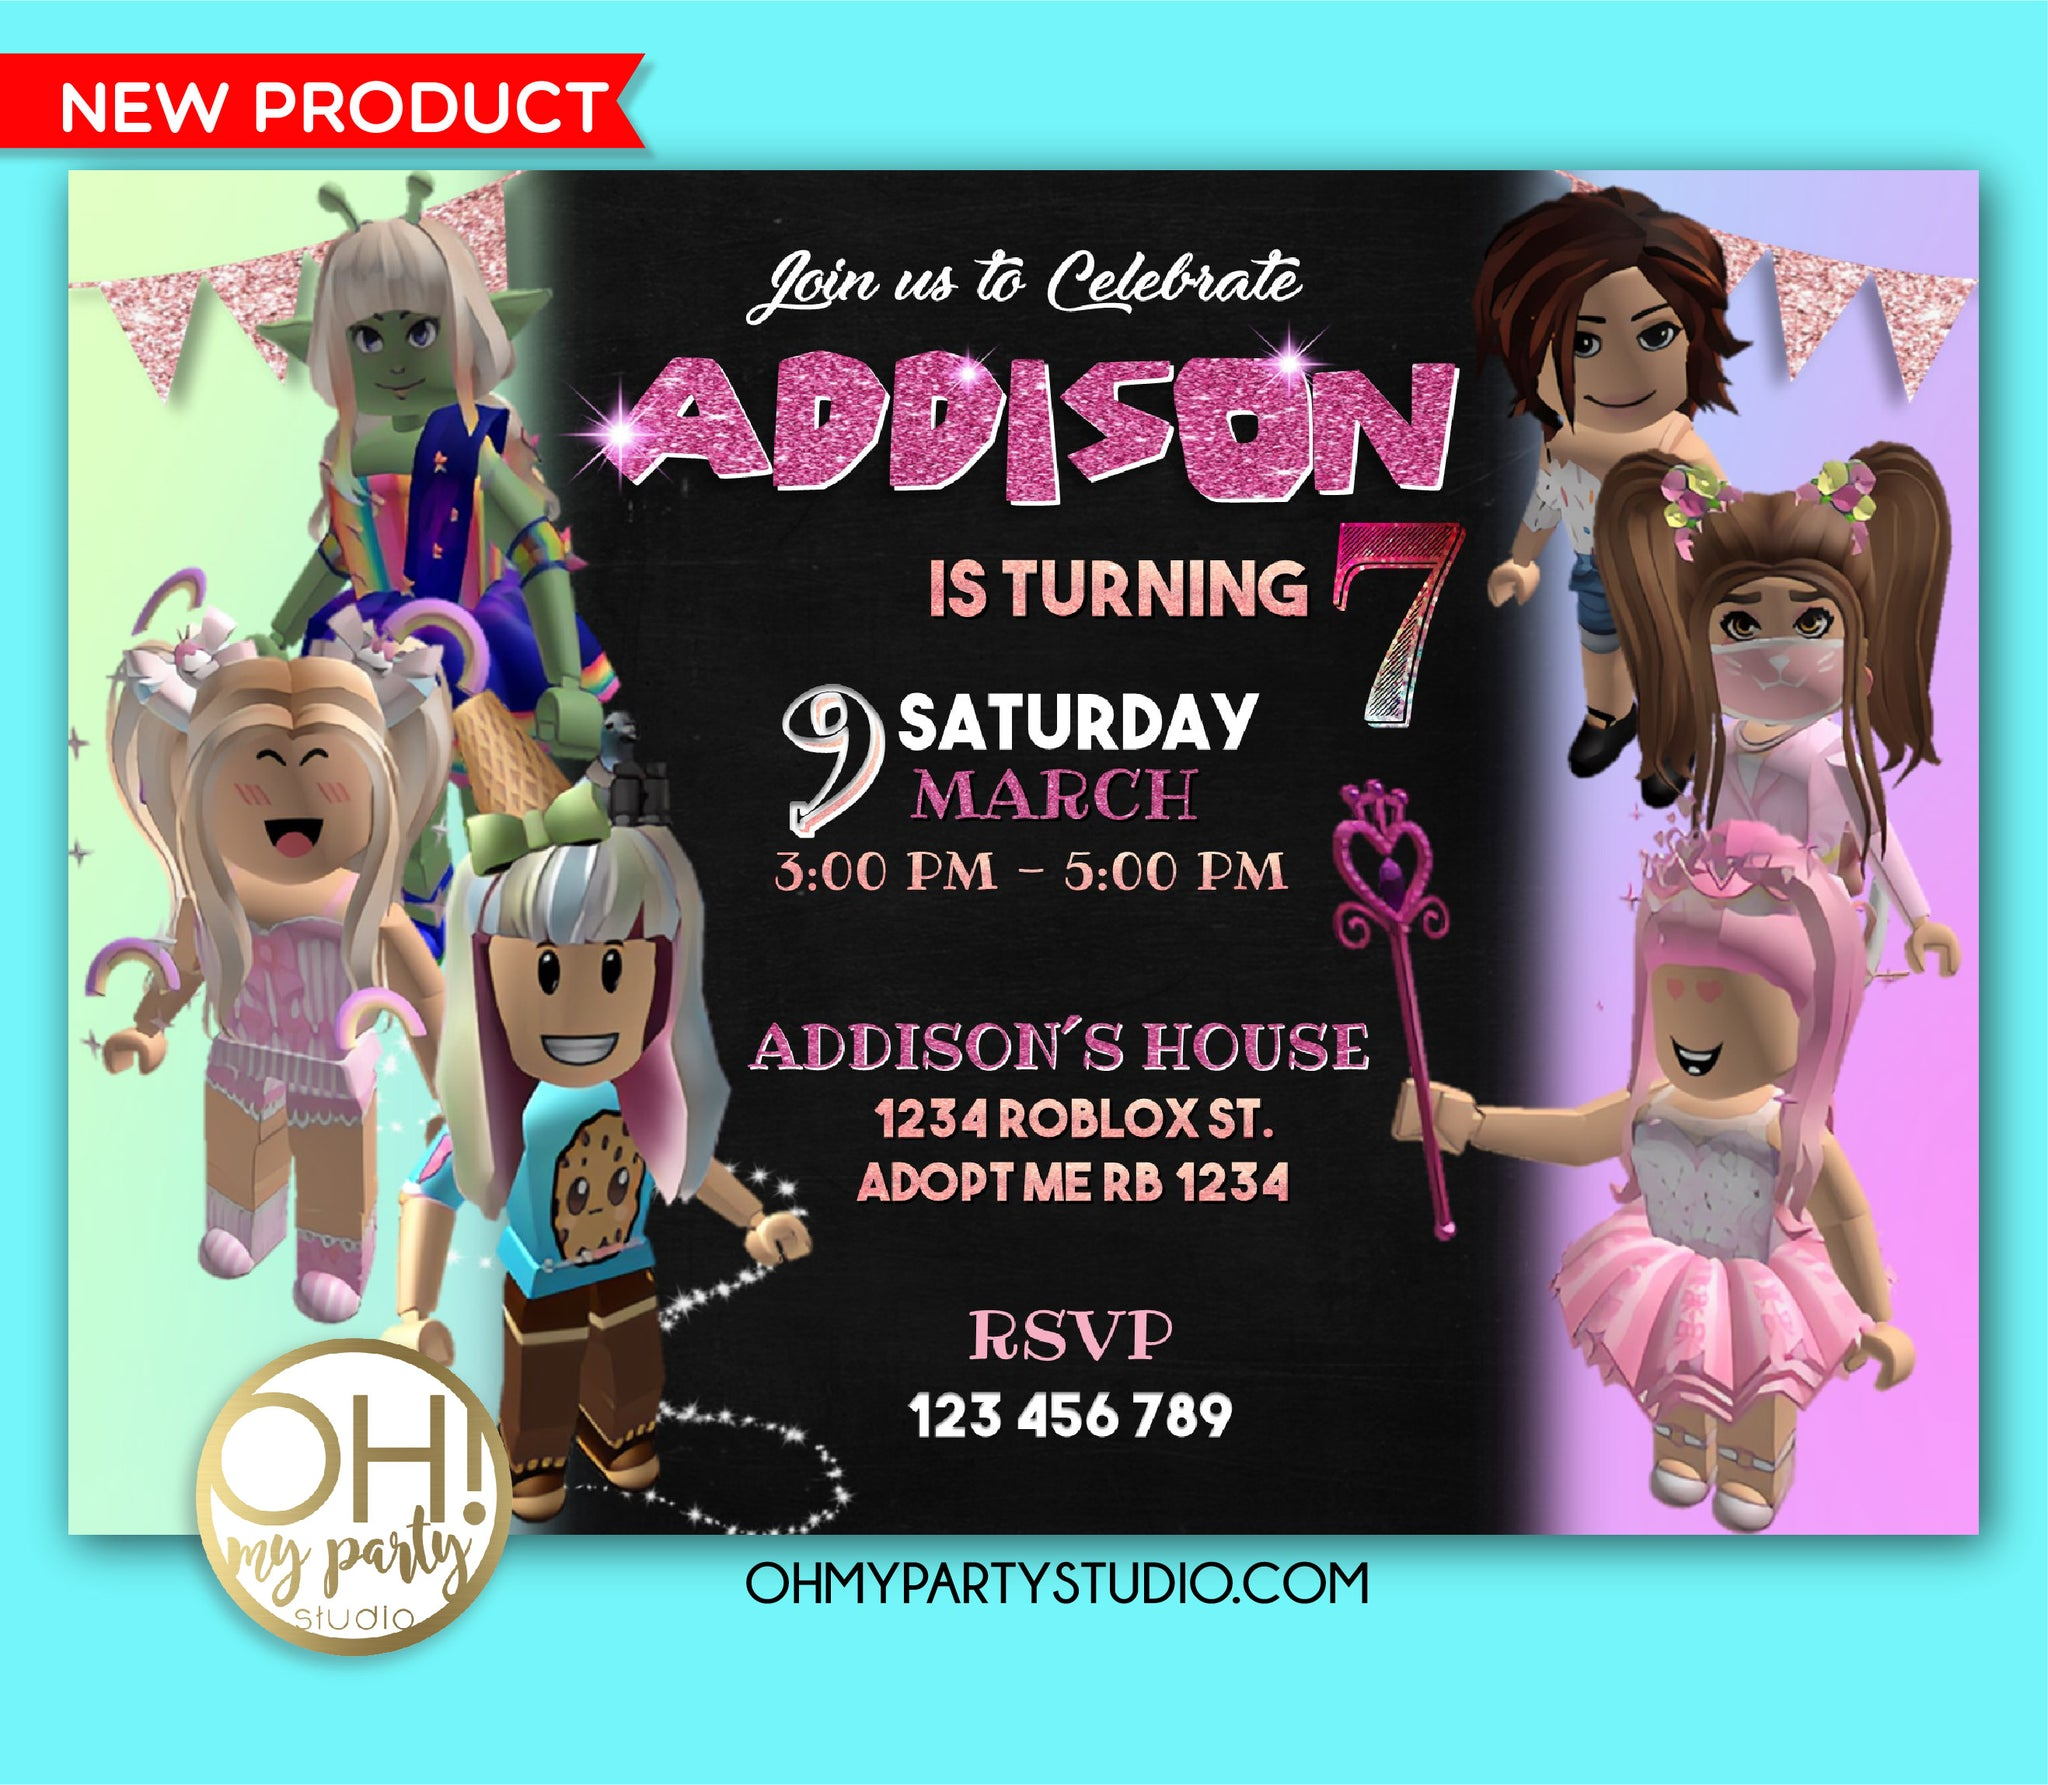 ROBLOX BIRTHDAY PARTY INVITATION, ROBLOX INVITATION GIRL, ROBLOX BIRTHDAY INVITATION, ROBLOX BIRTHDAY INVITATION, ROBLOX BIRTHDAY PARTY, ROBLOX BIRTHDAY PARTY IDEAS, ROBLOX INVITATION, ROBLOX INVITE, ROBLOX BIRTHDAY, ROBLOX PRINTABLES, ROBLOX DECORATIONS, ROBLOX PARTY INVITE, ROBLOX PARTY, ROBLOX INVITATIONS